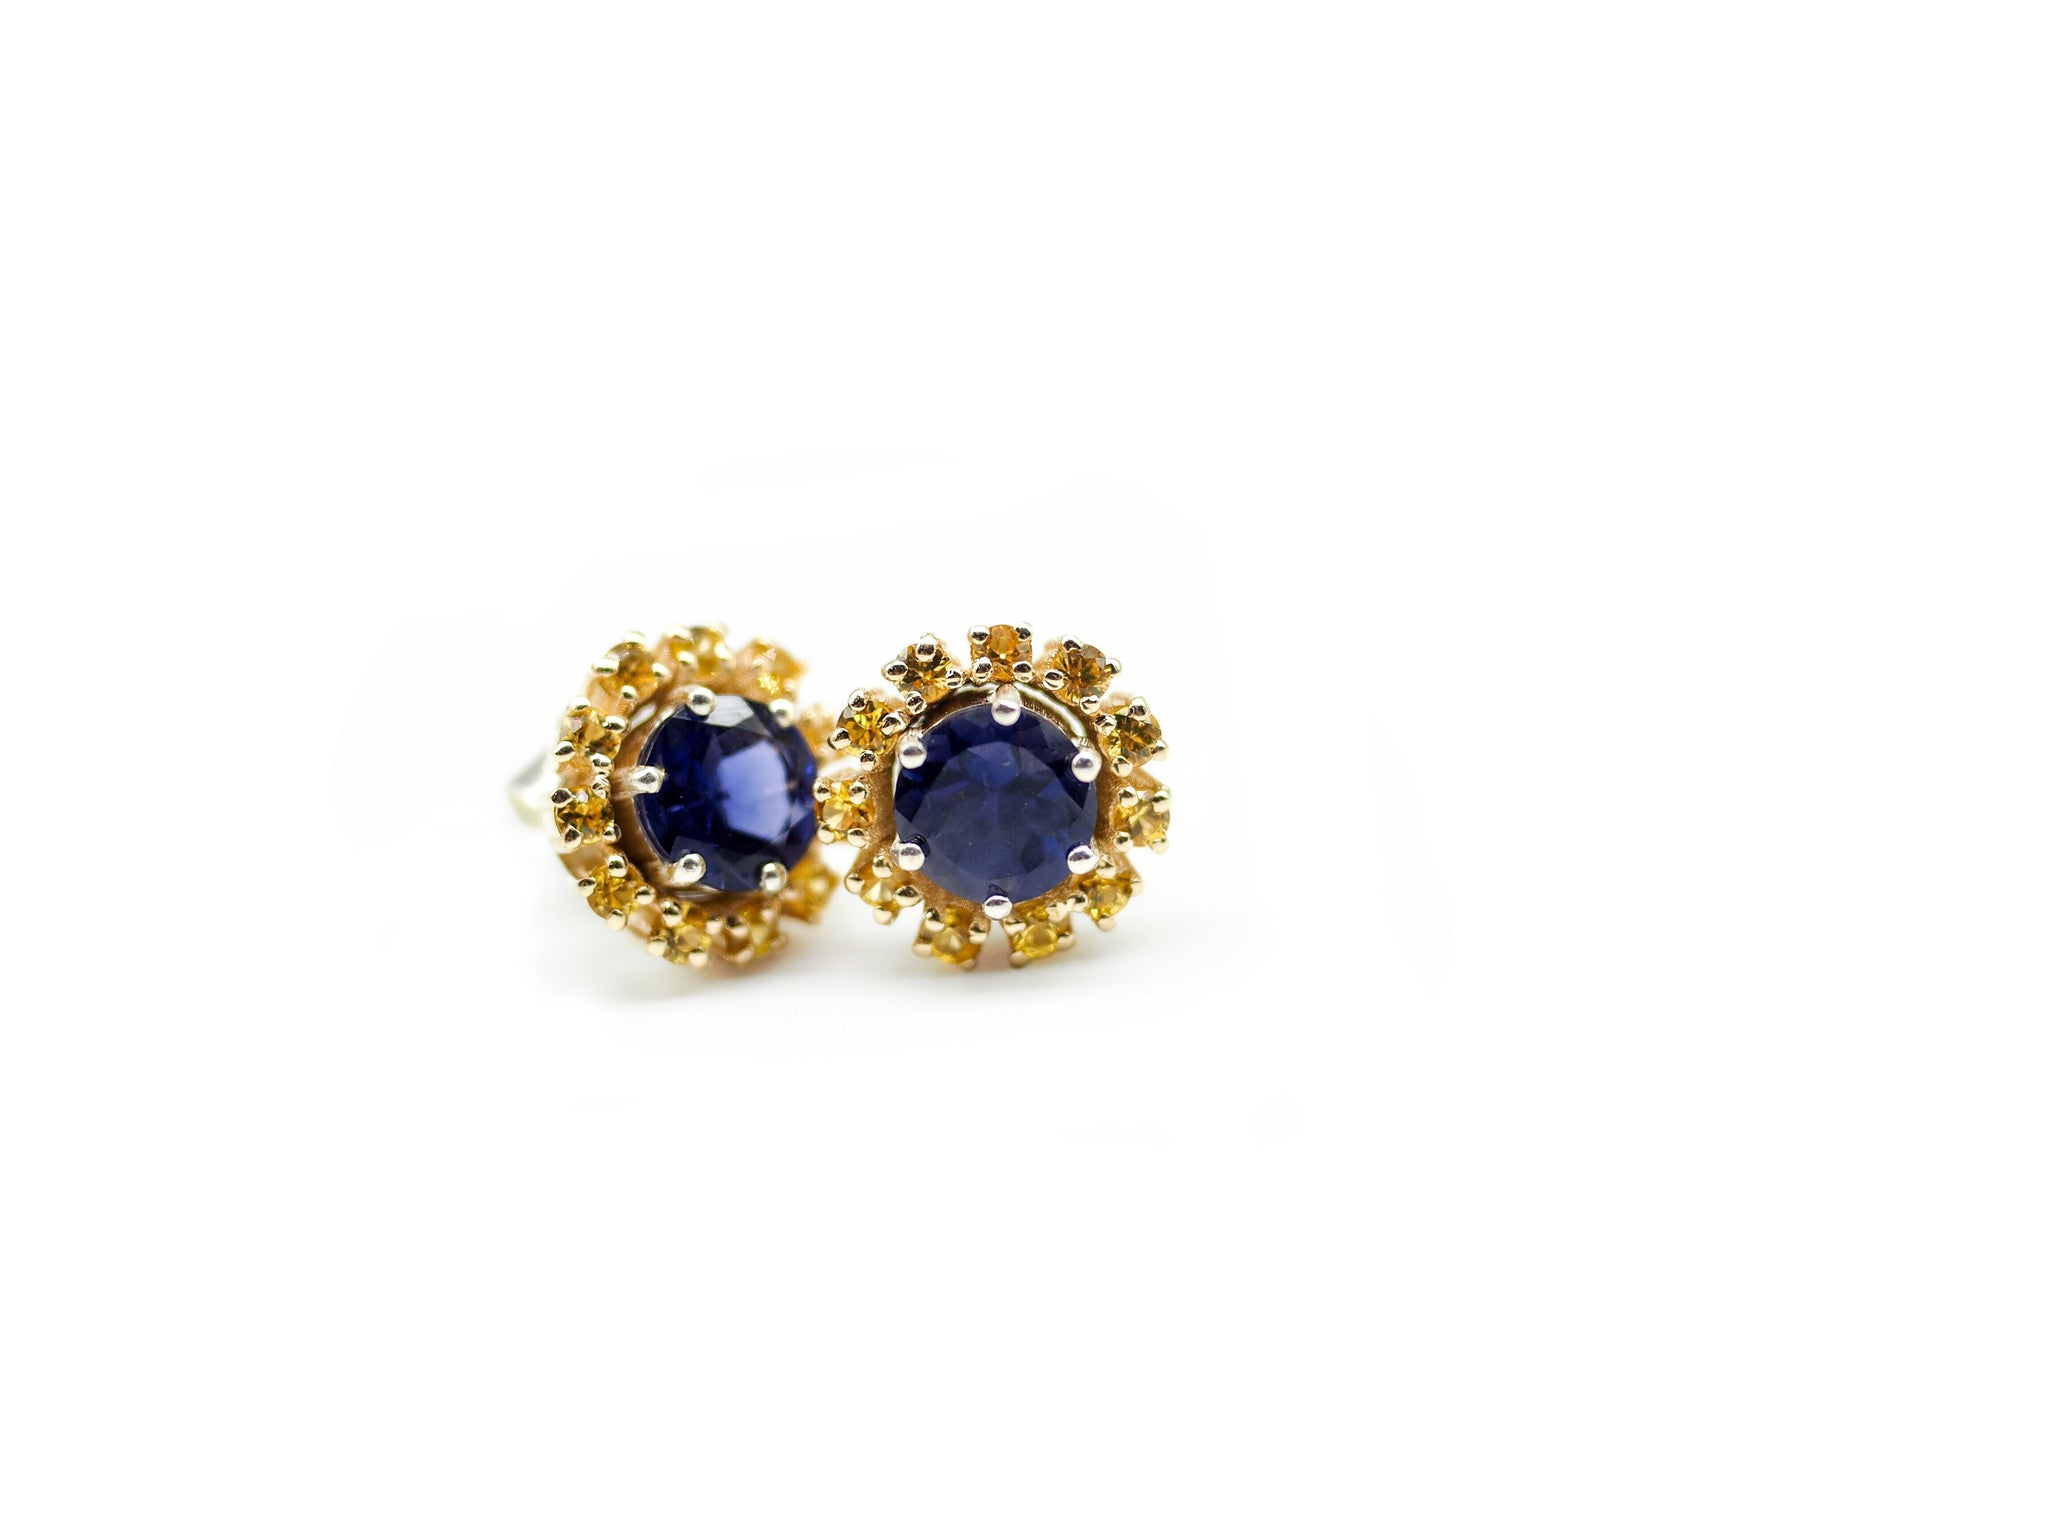 prouctdetail single buy carat yellow pukhraj oval sapphire pieces